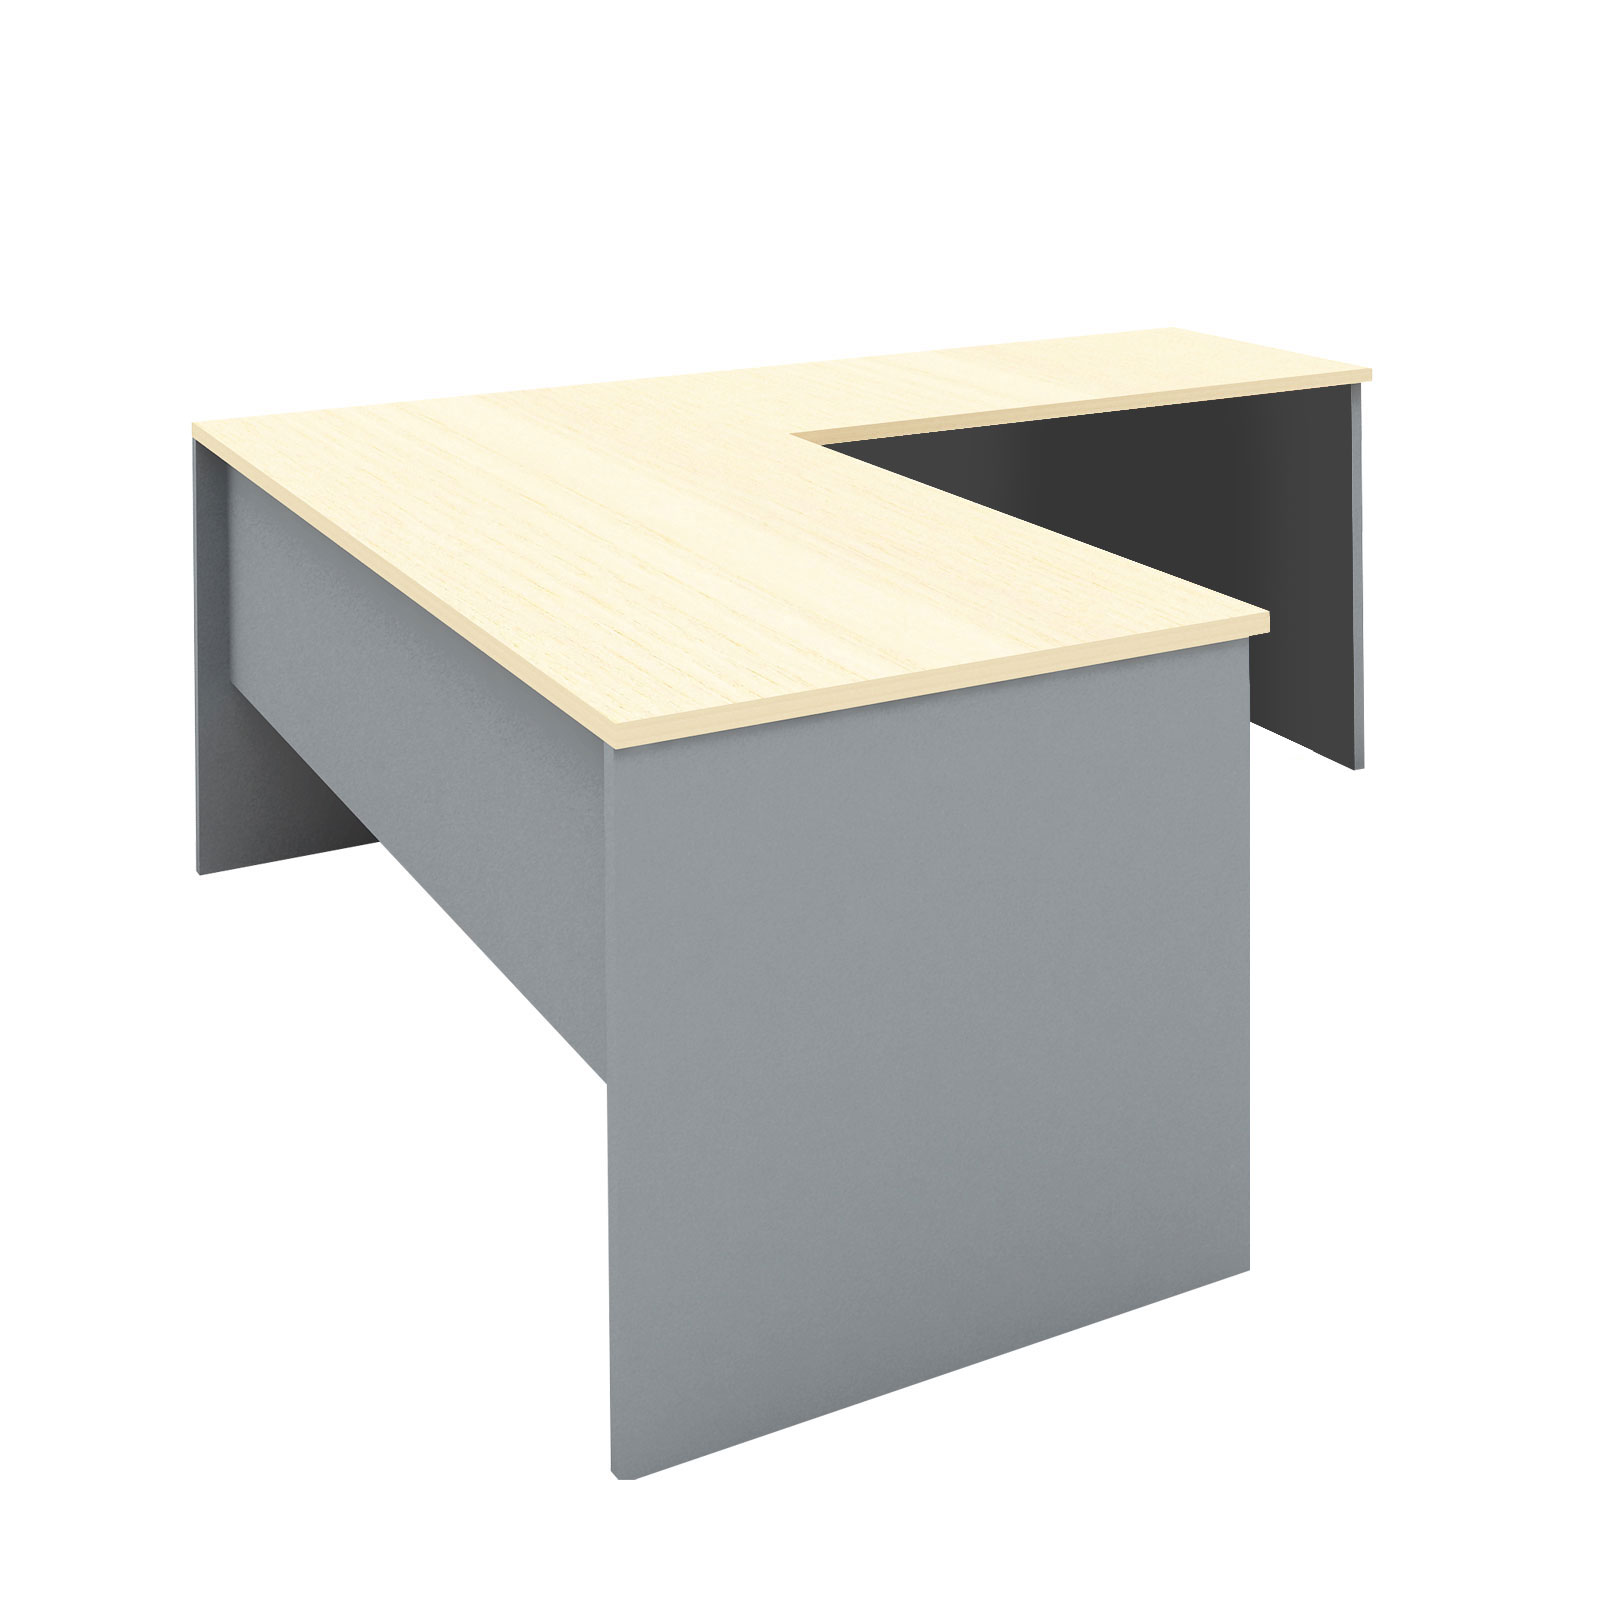 Merveilleux L Shape Table With L Corner